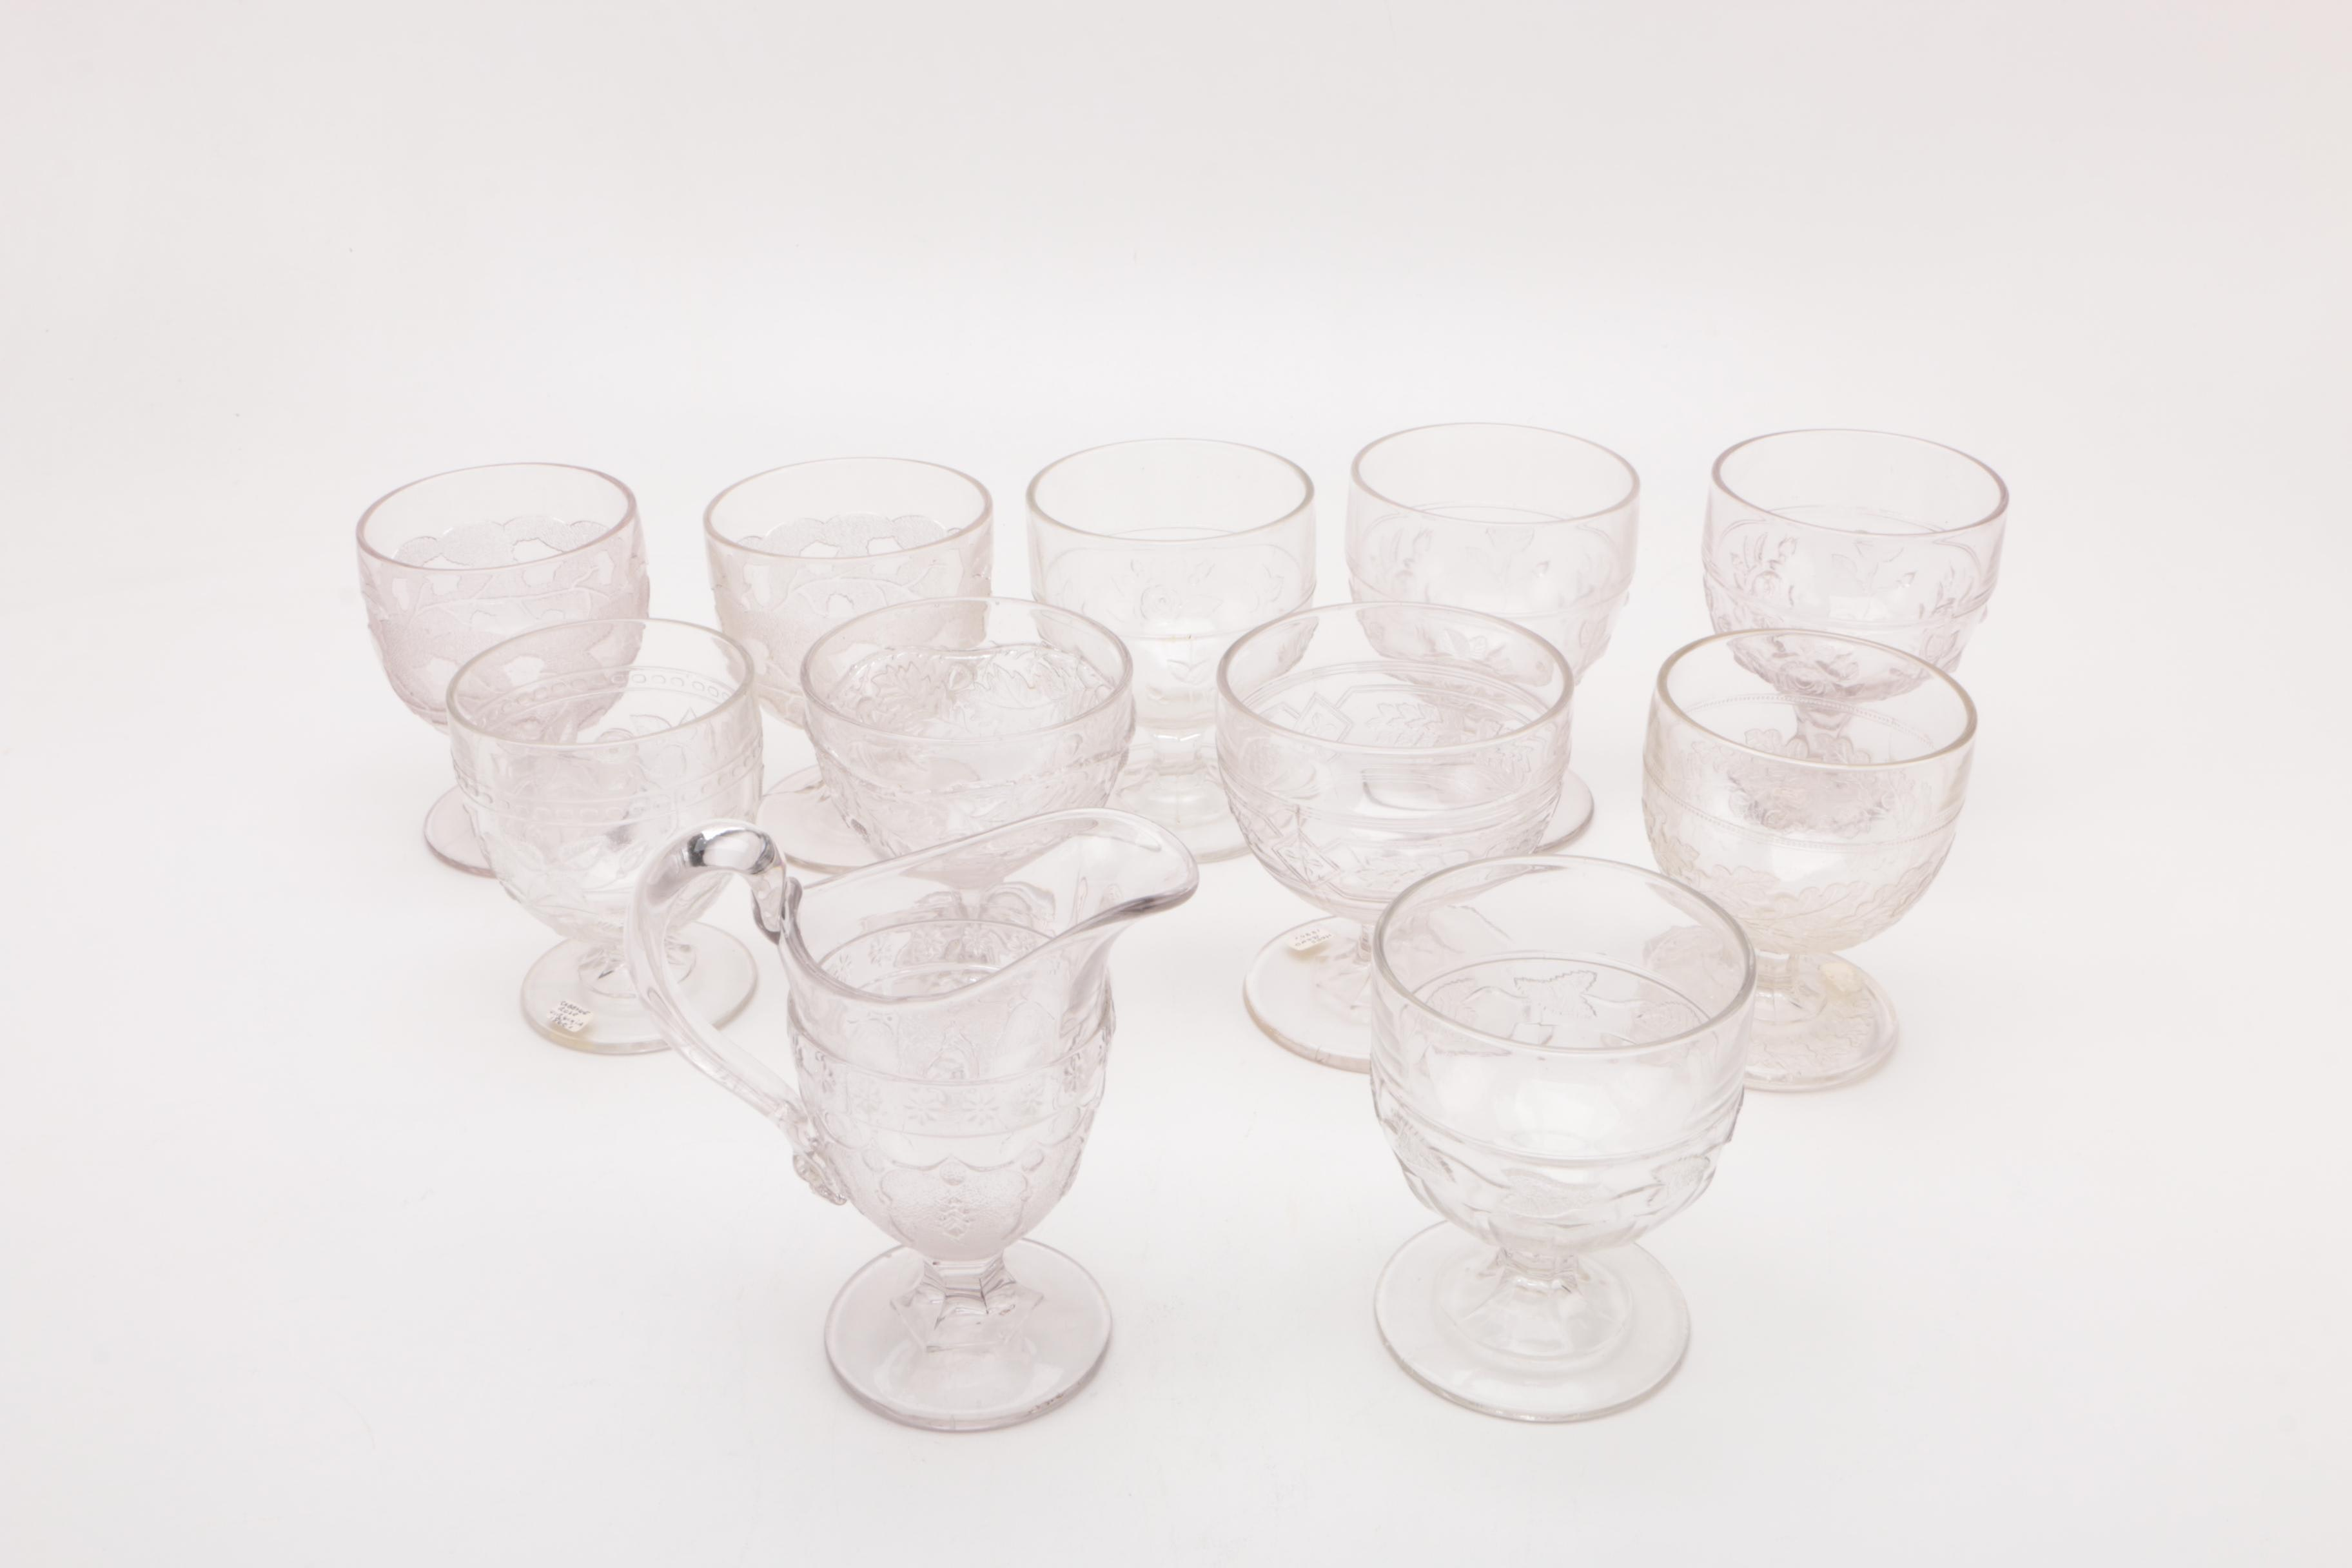 Openwork Wine Glasses and Footed Creamer